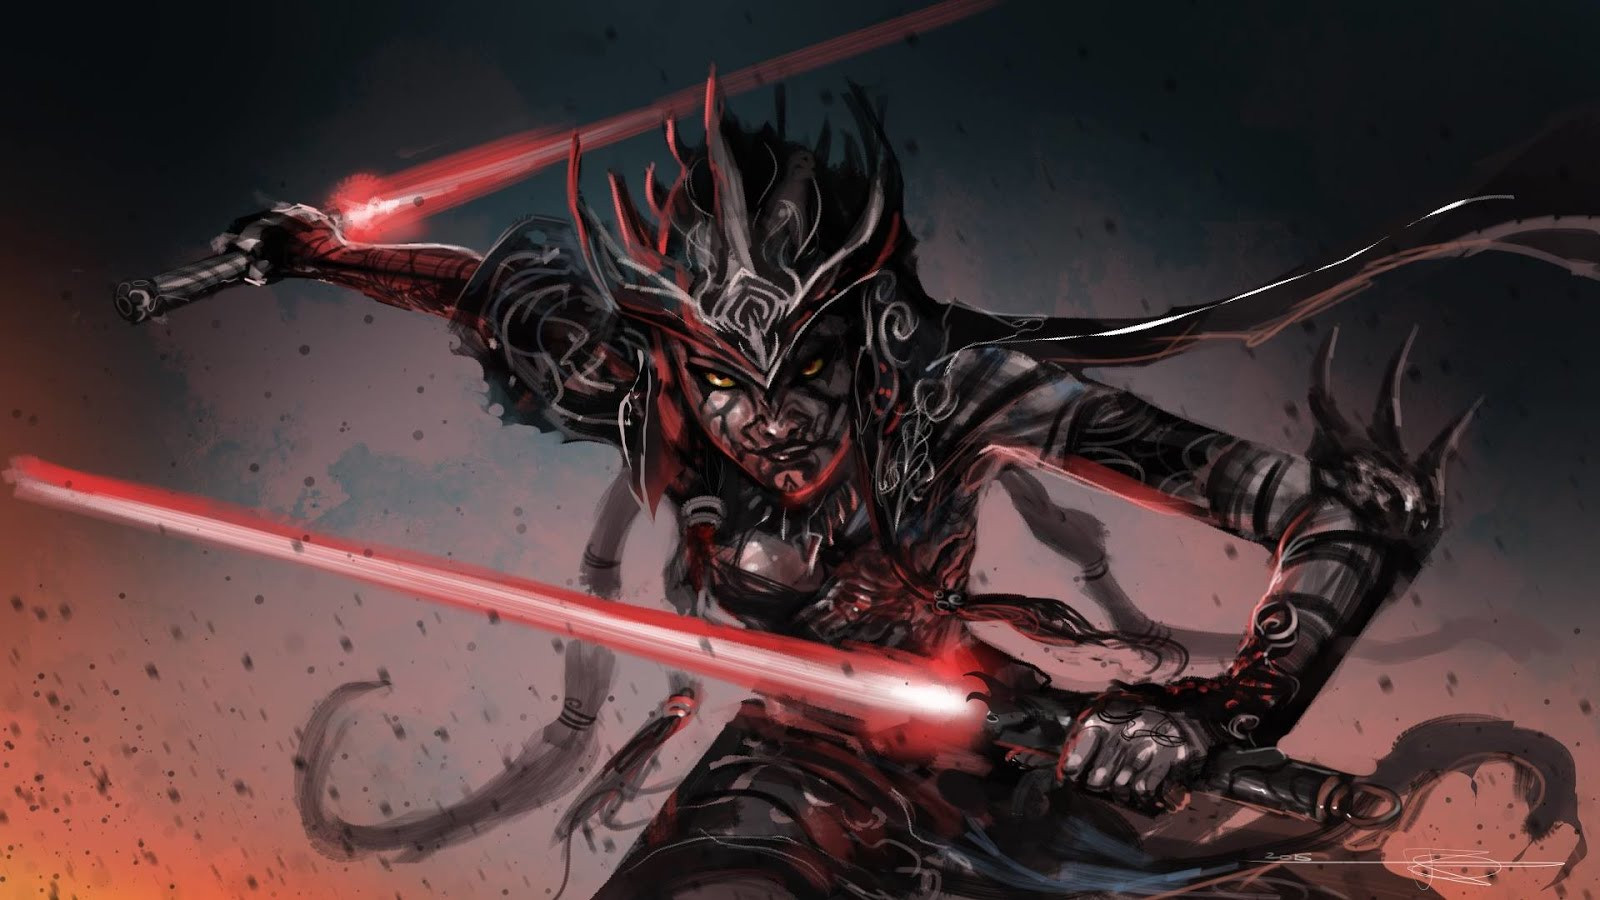 Sith+Witch+by+Rod+Wong[1].jpg